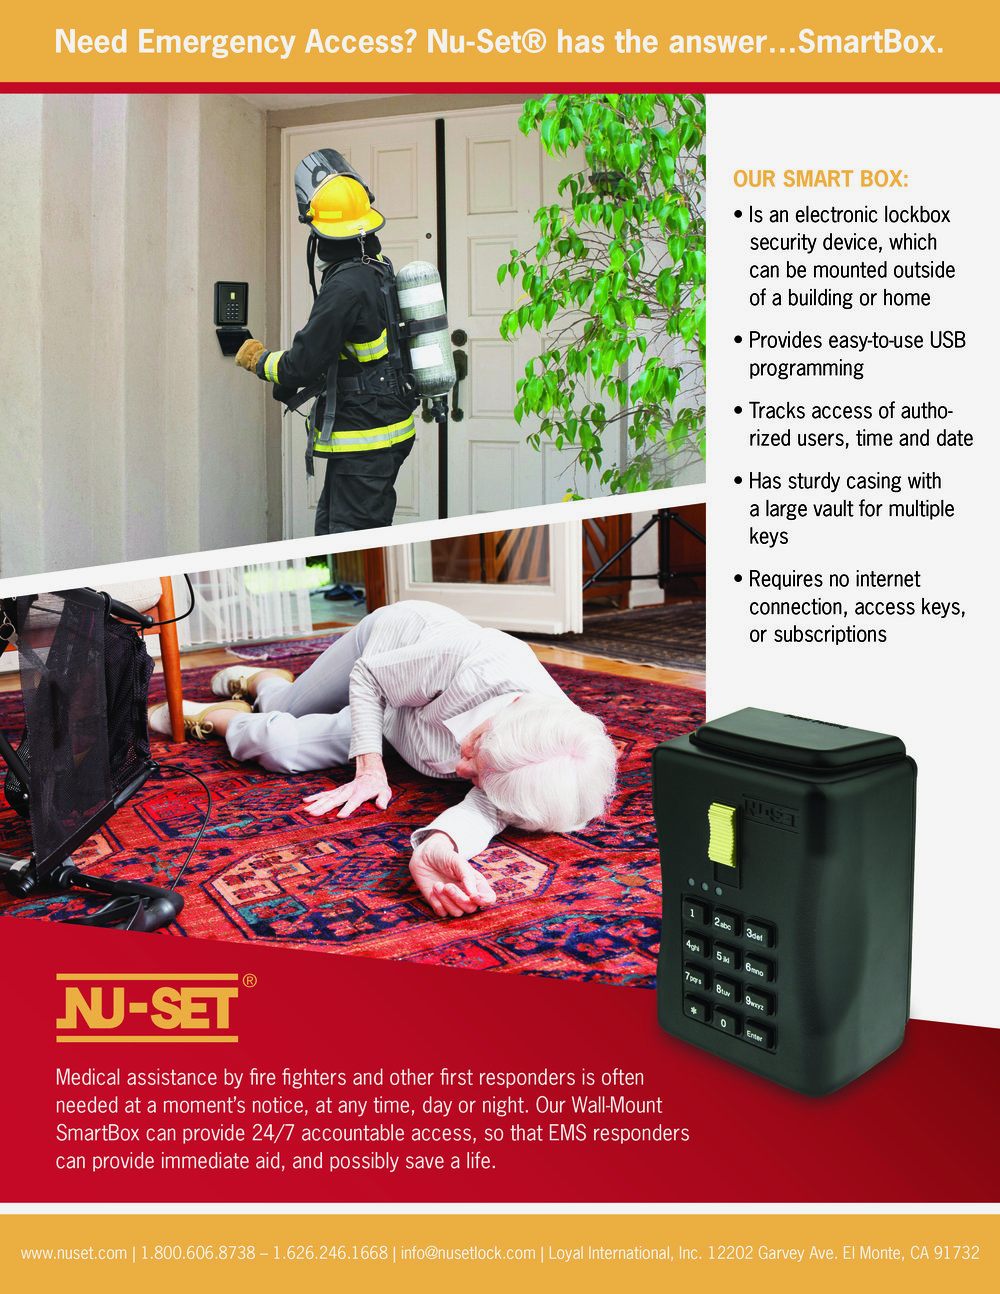 Full page ad for Nu-Set's SmartBox